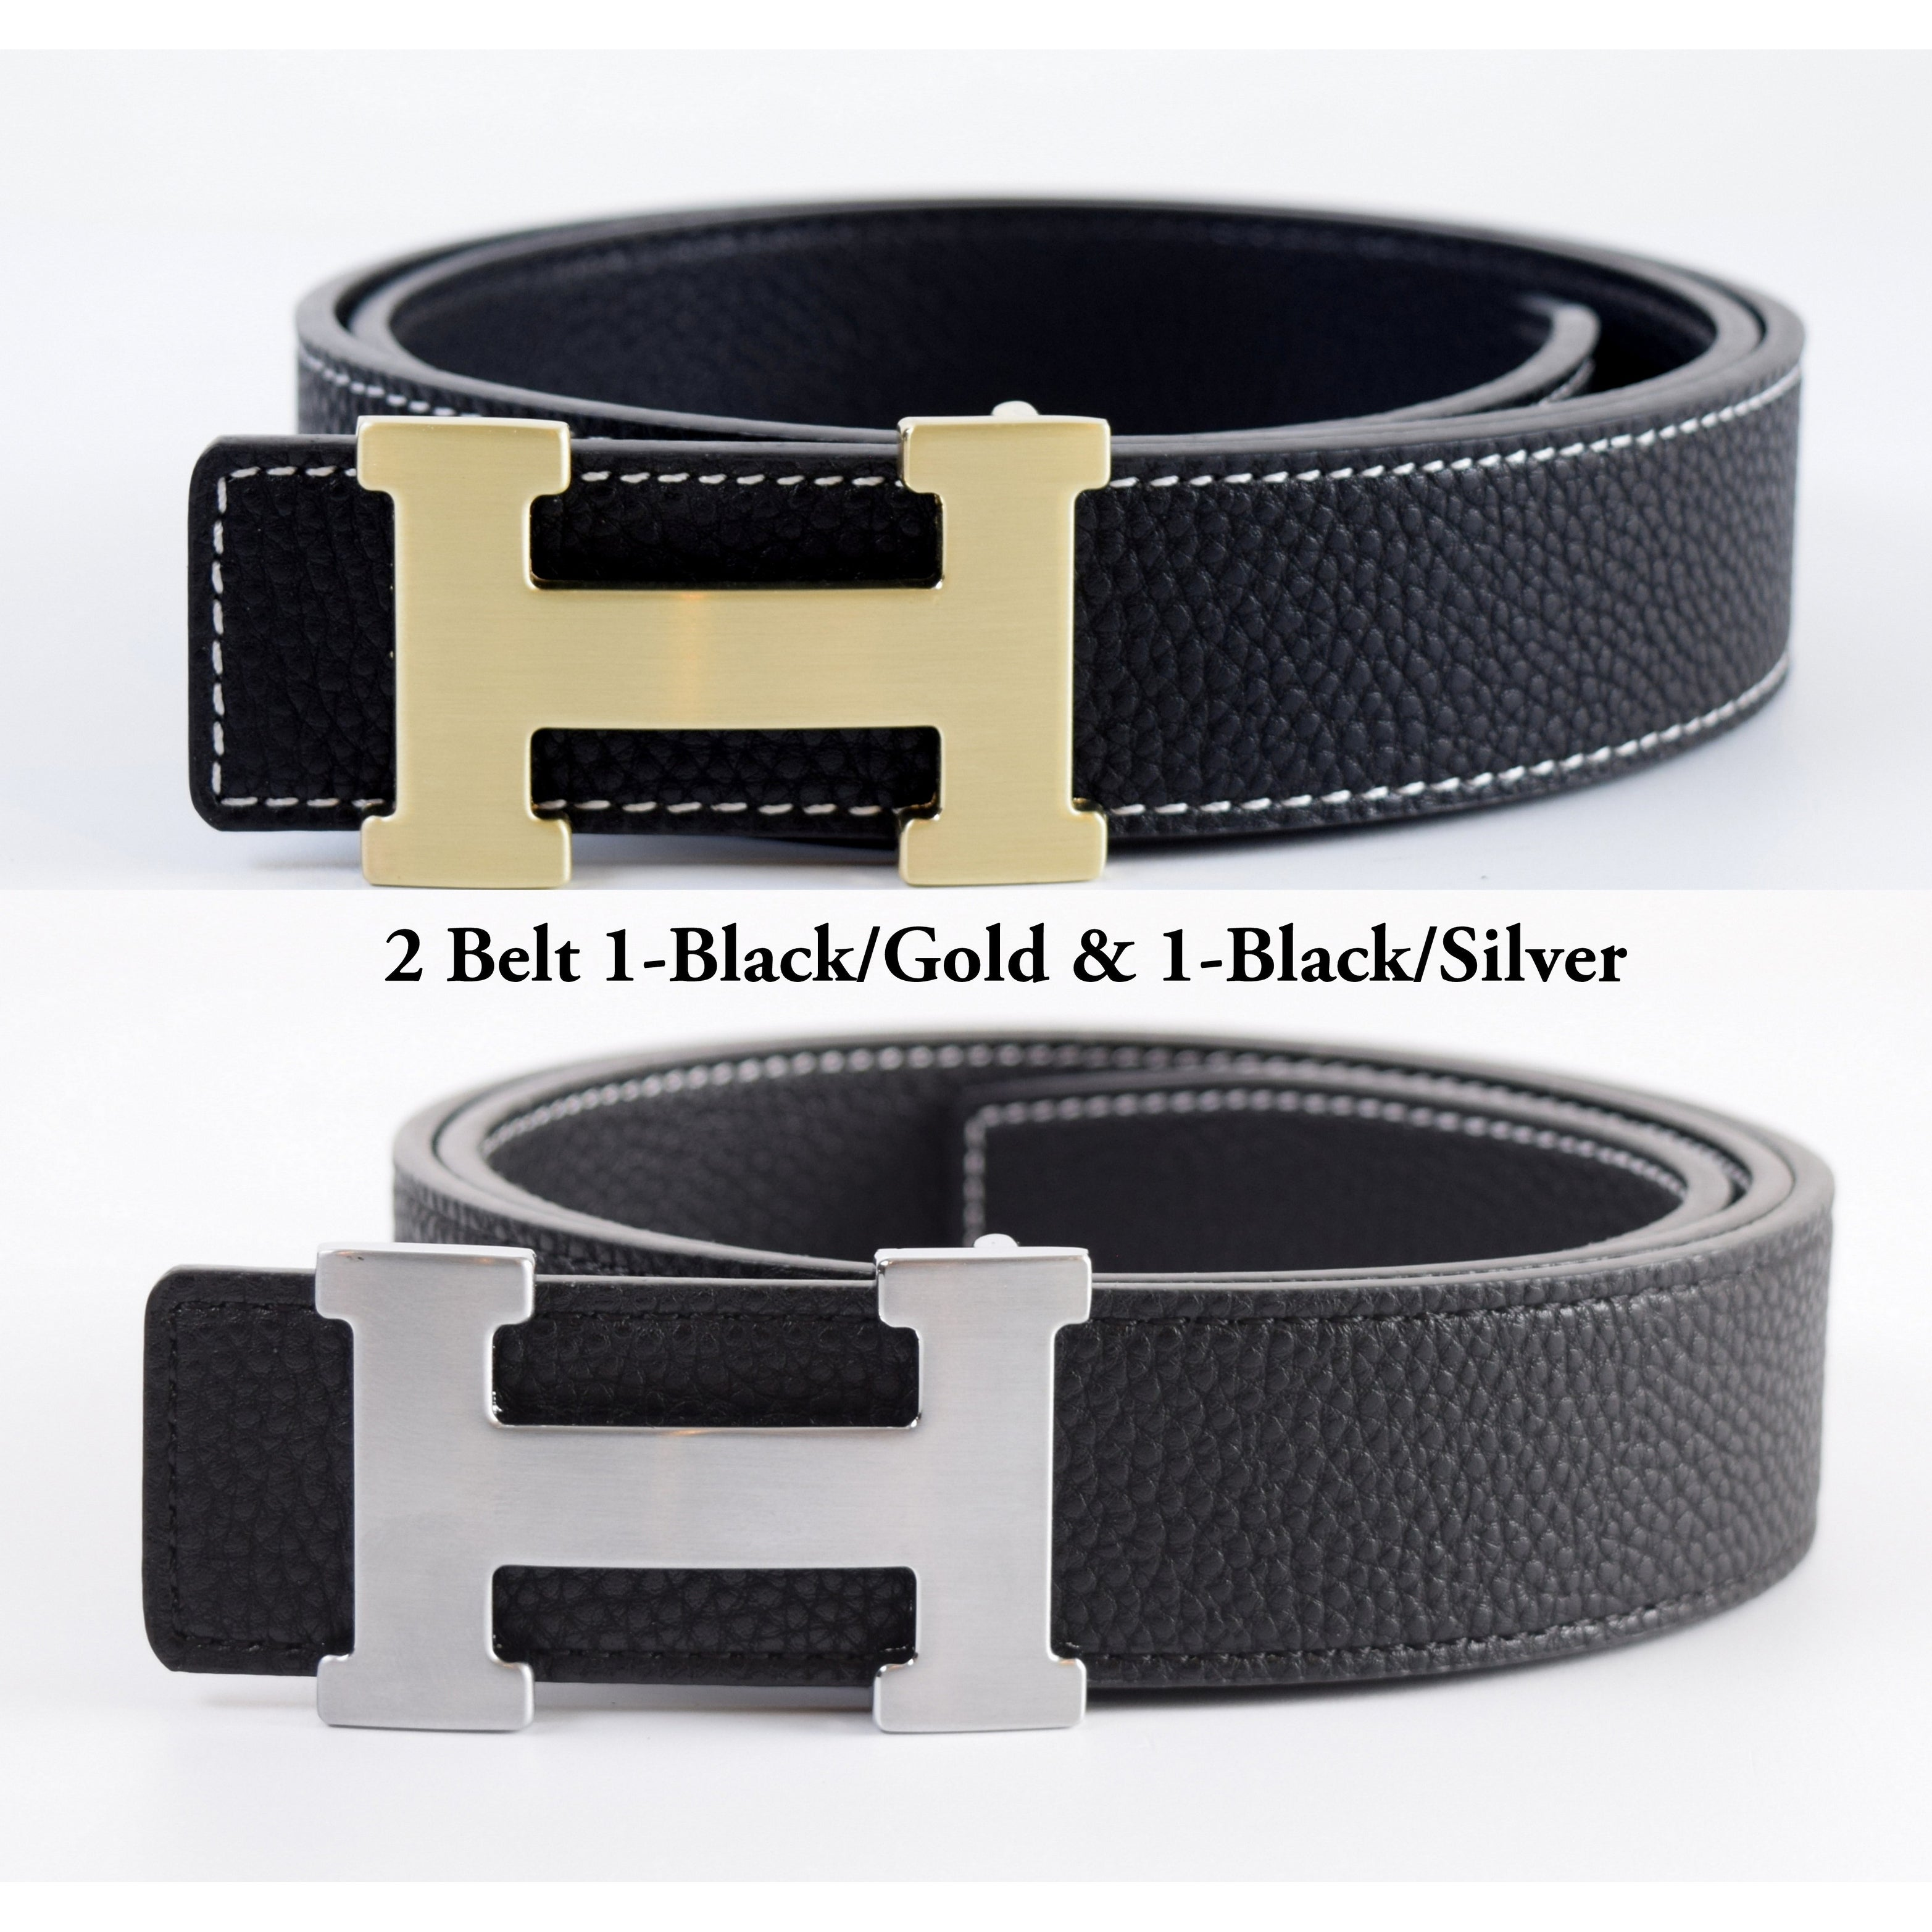 Assorted Colors Black Leather Belt with Steel Guard